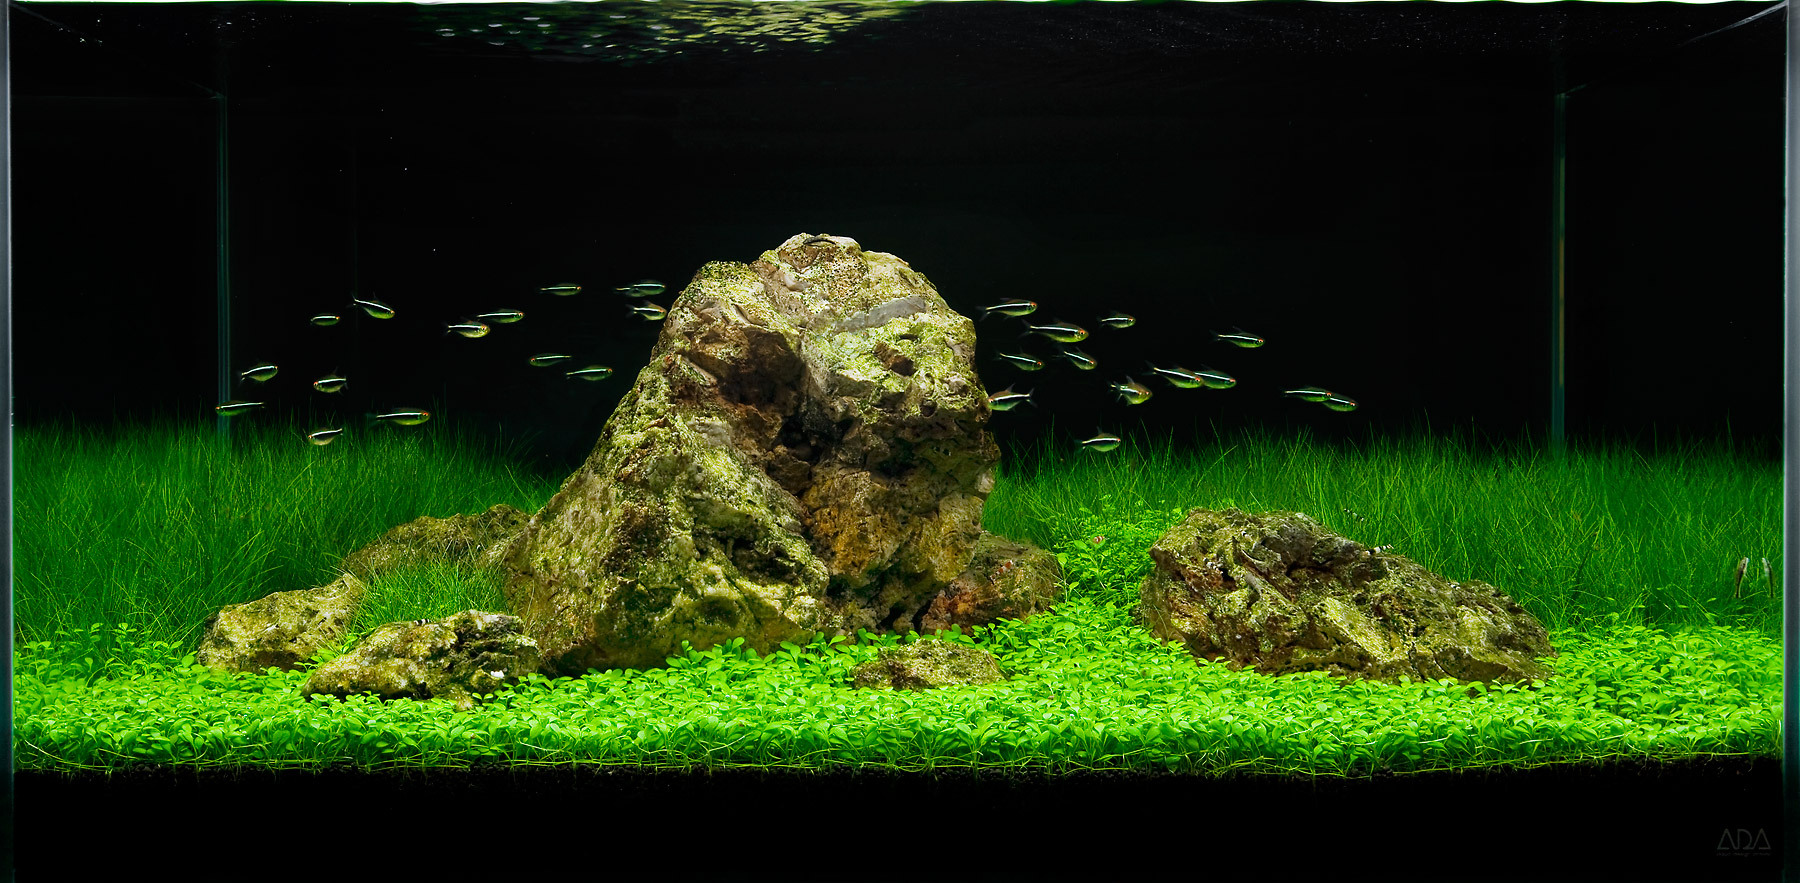 Ada Iwagumi aquascape by Jeff Senske